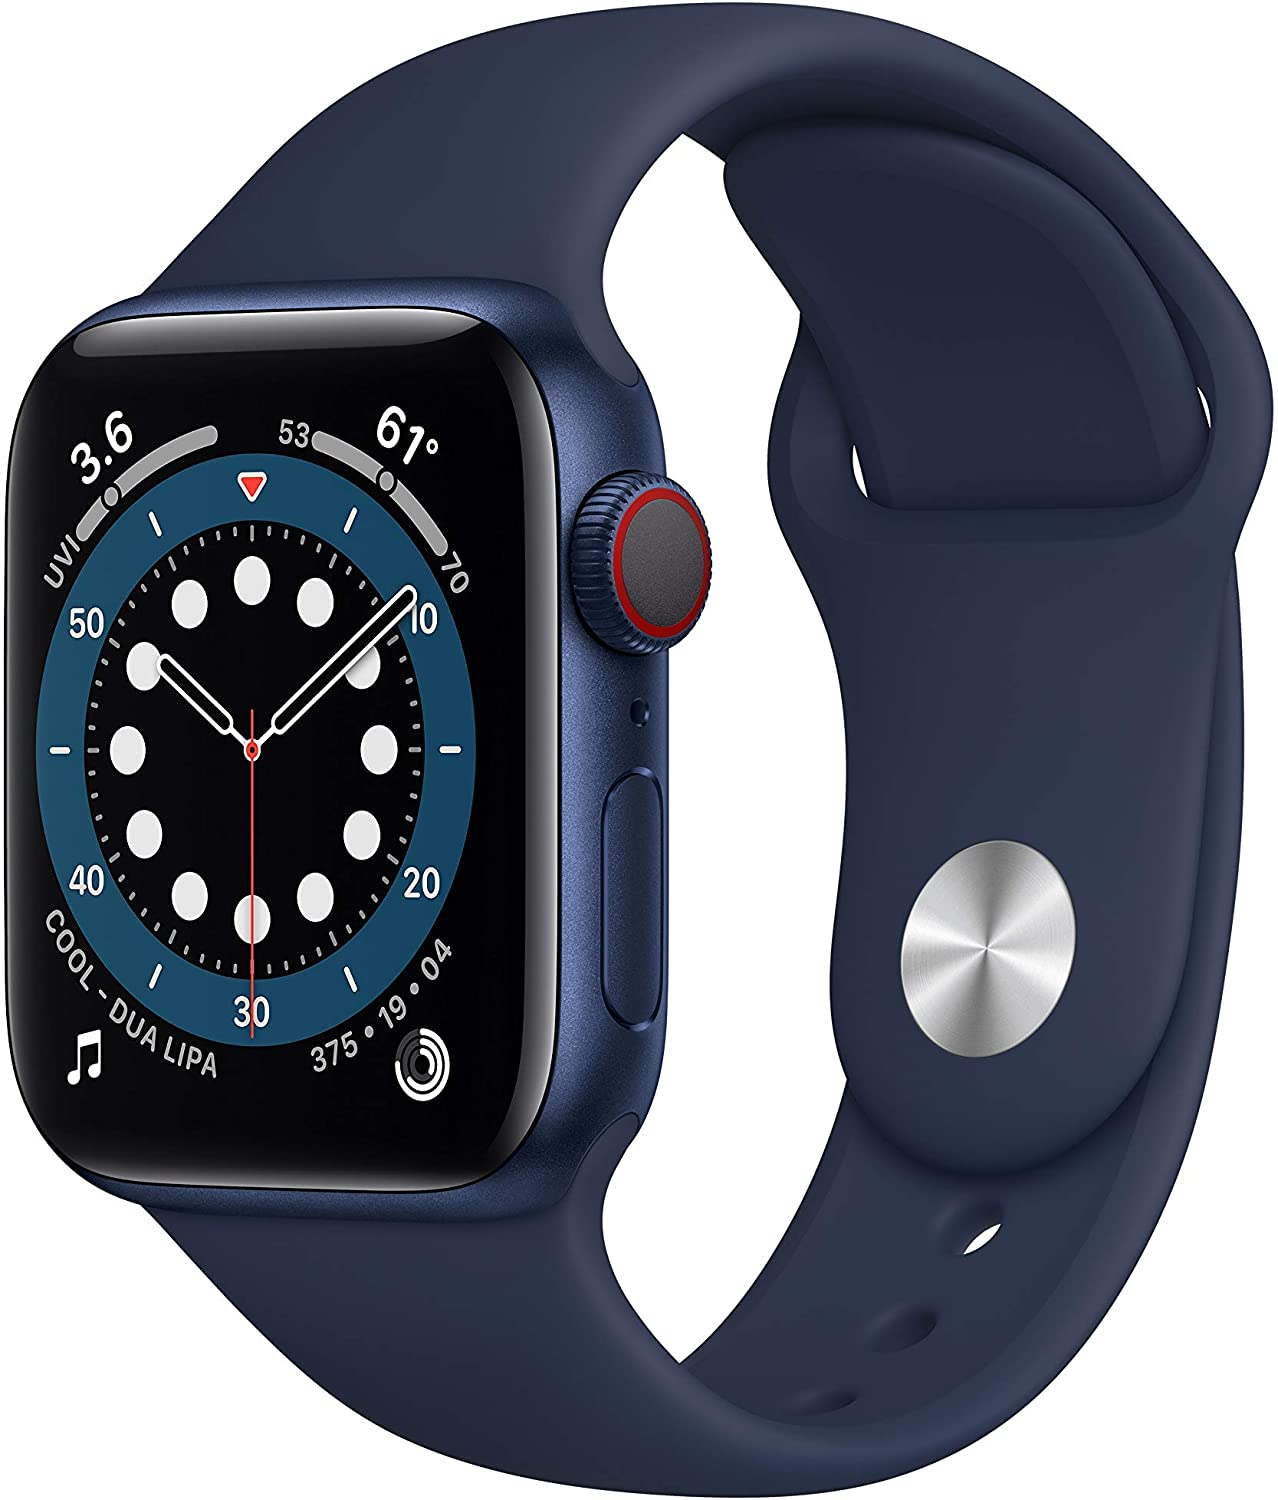 Nuevo Apple Watch Serie 6 - GPS + CELULAR - 44MM